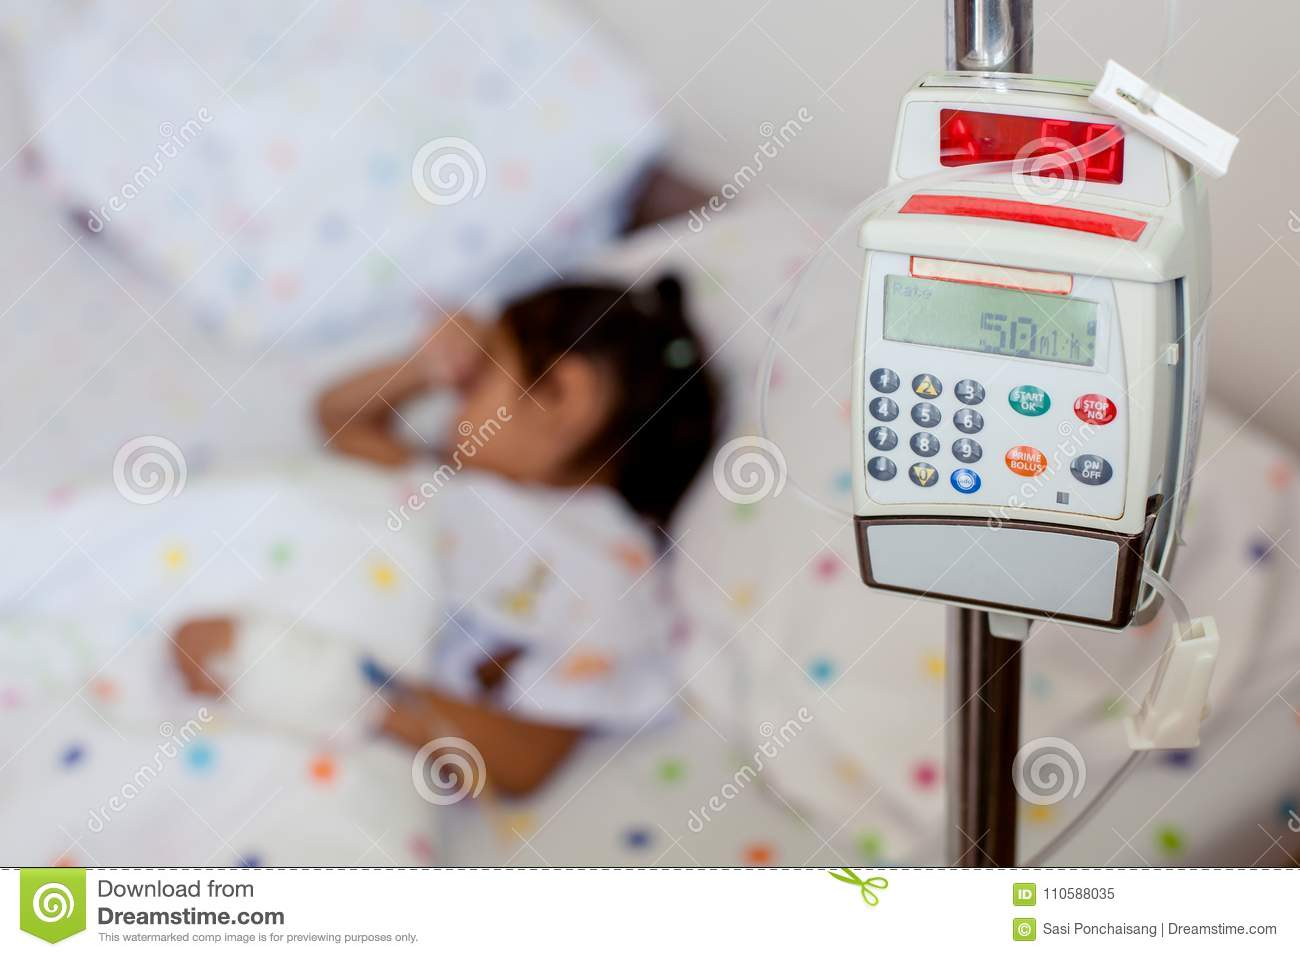 Why does a child pump with blood